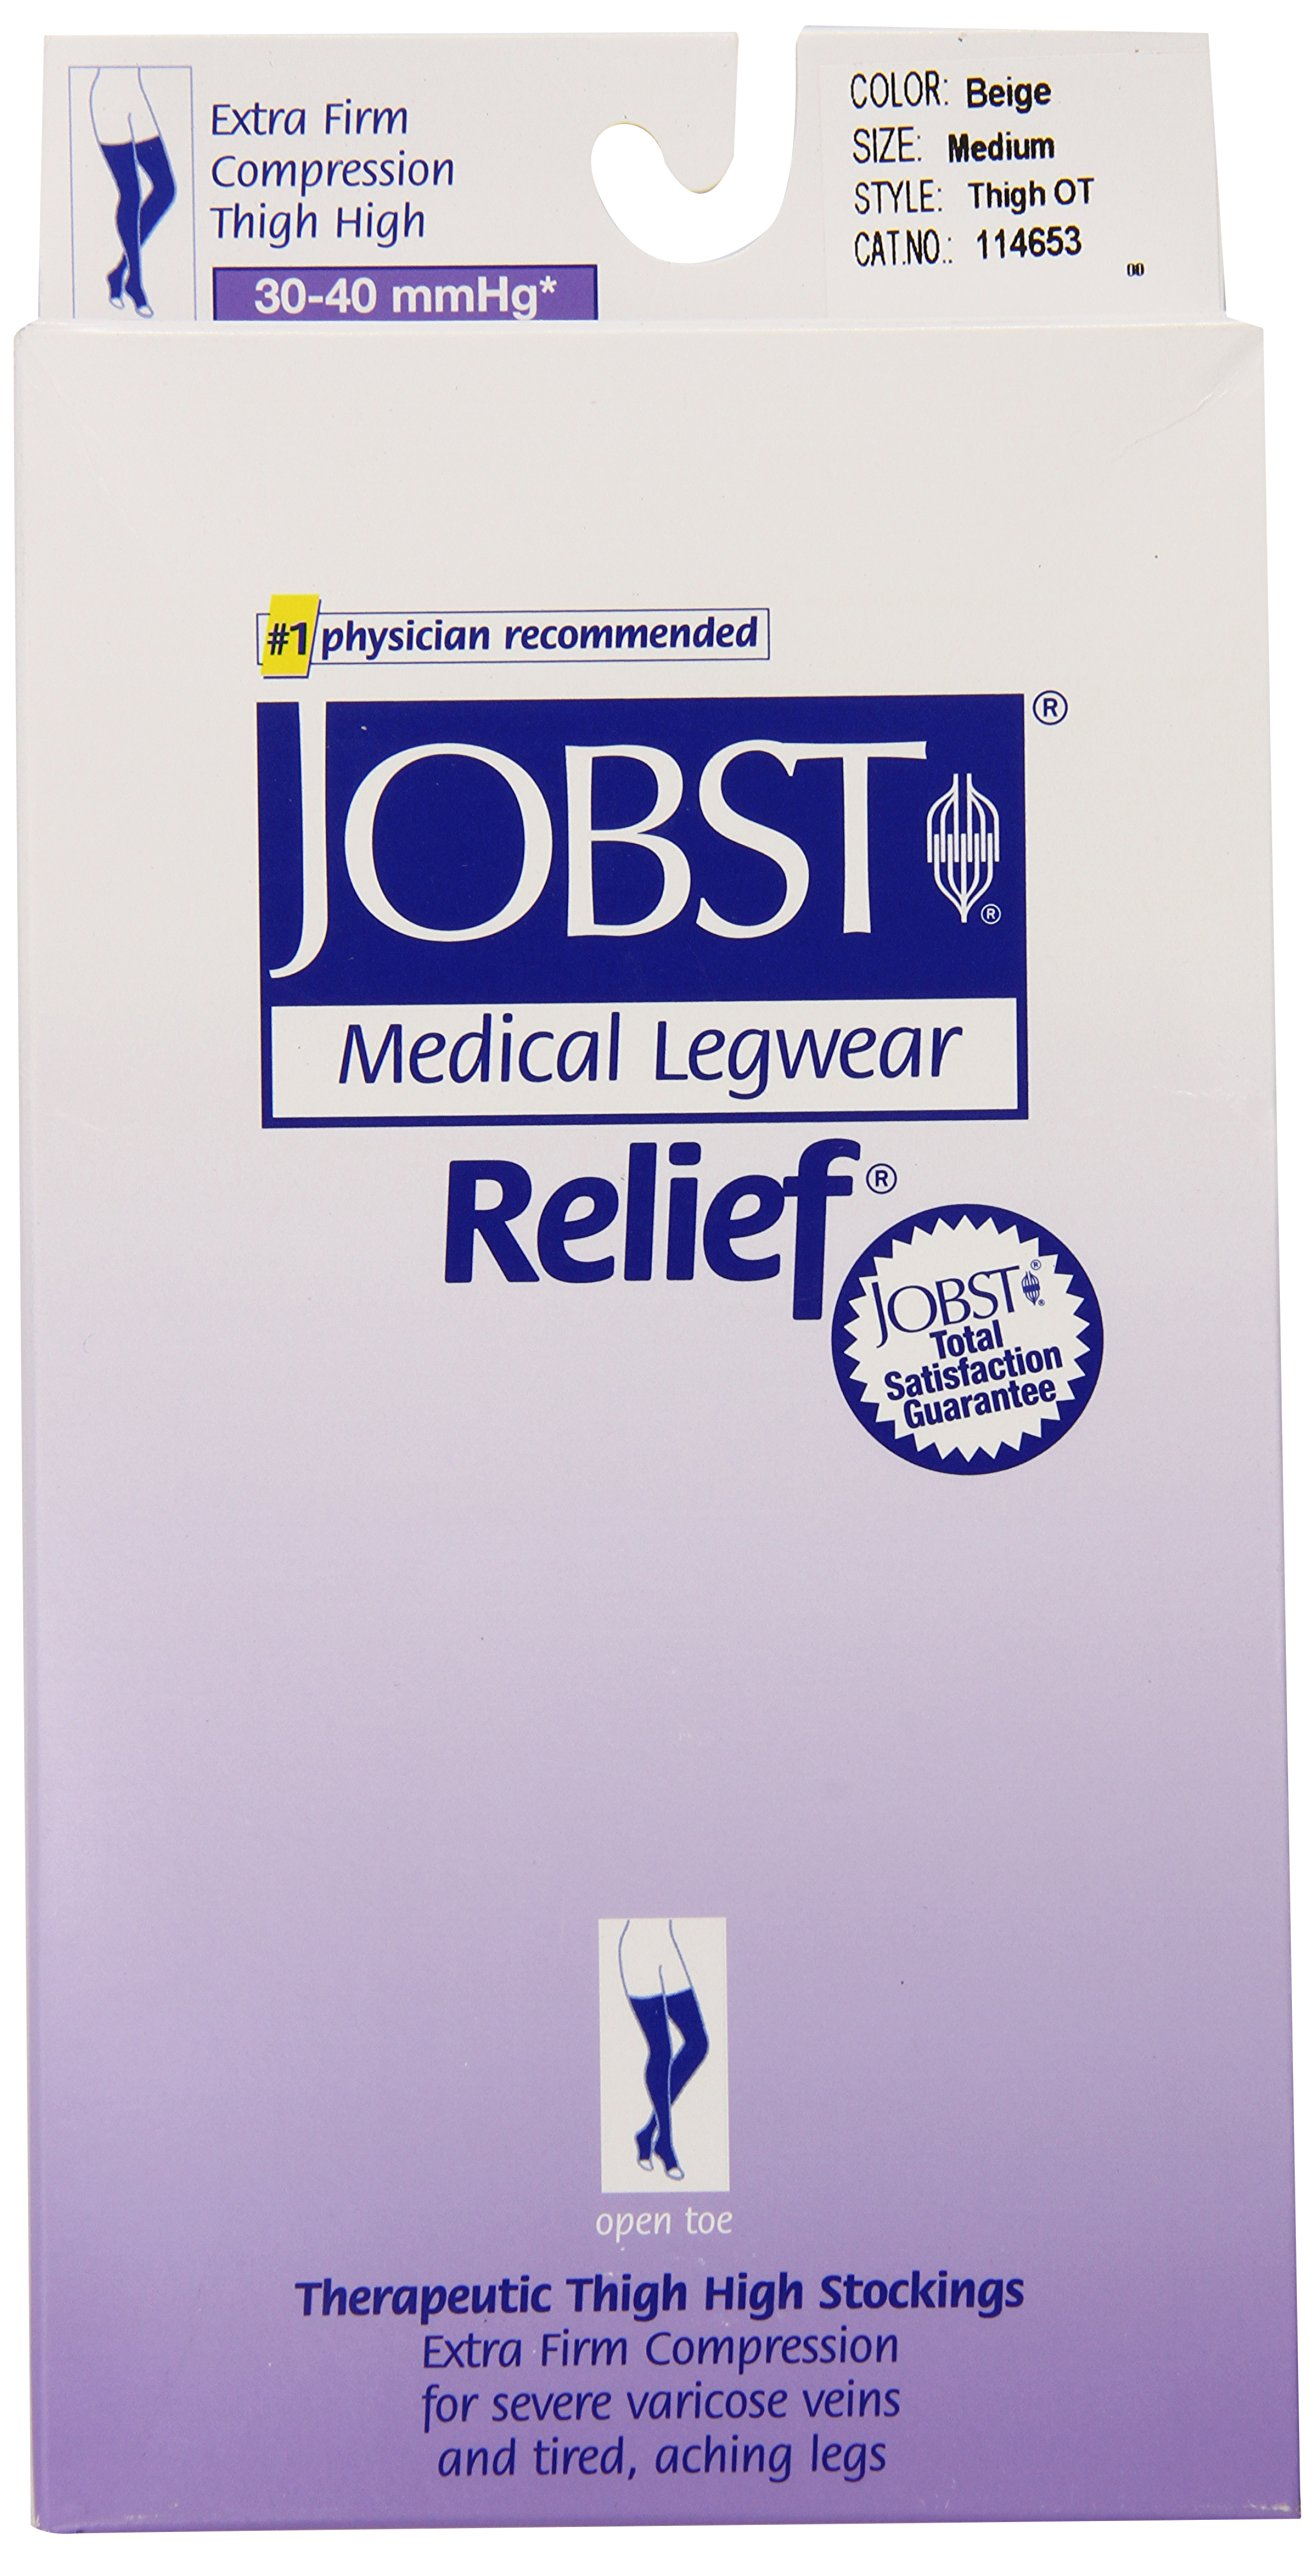 JOBST Relief Compression Stockings, 30-40 mmHg, Thigh High, Open Toe, Beige, Medium